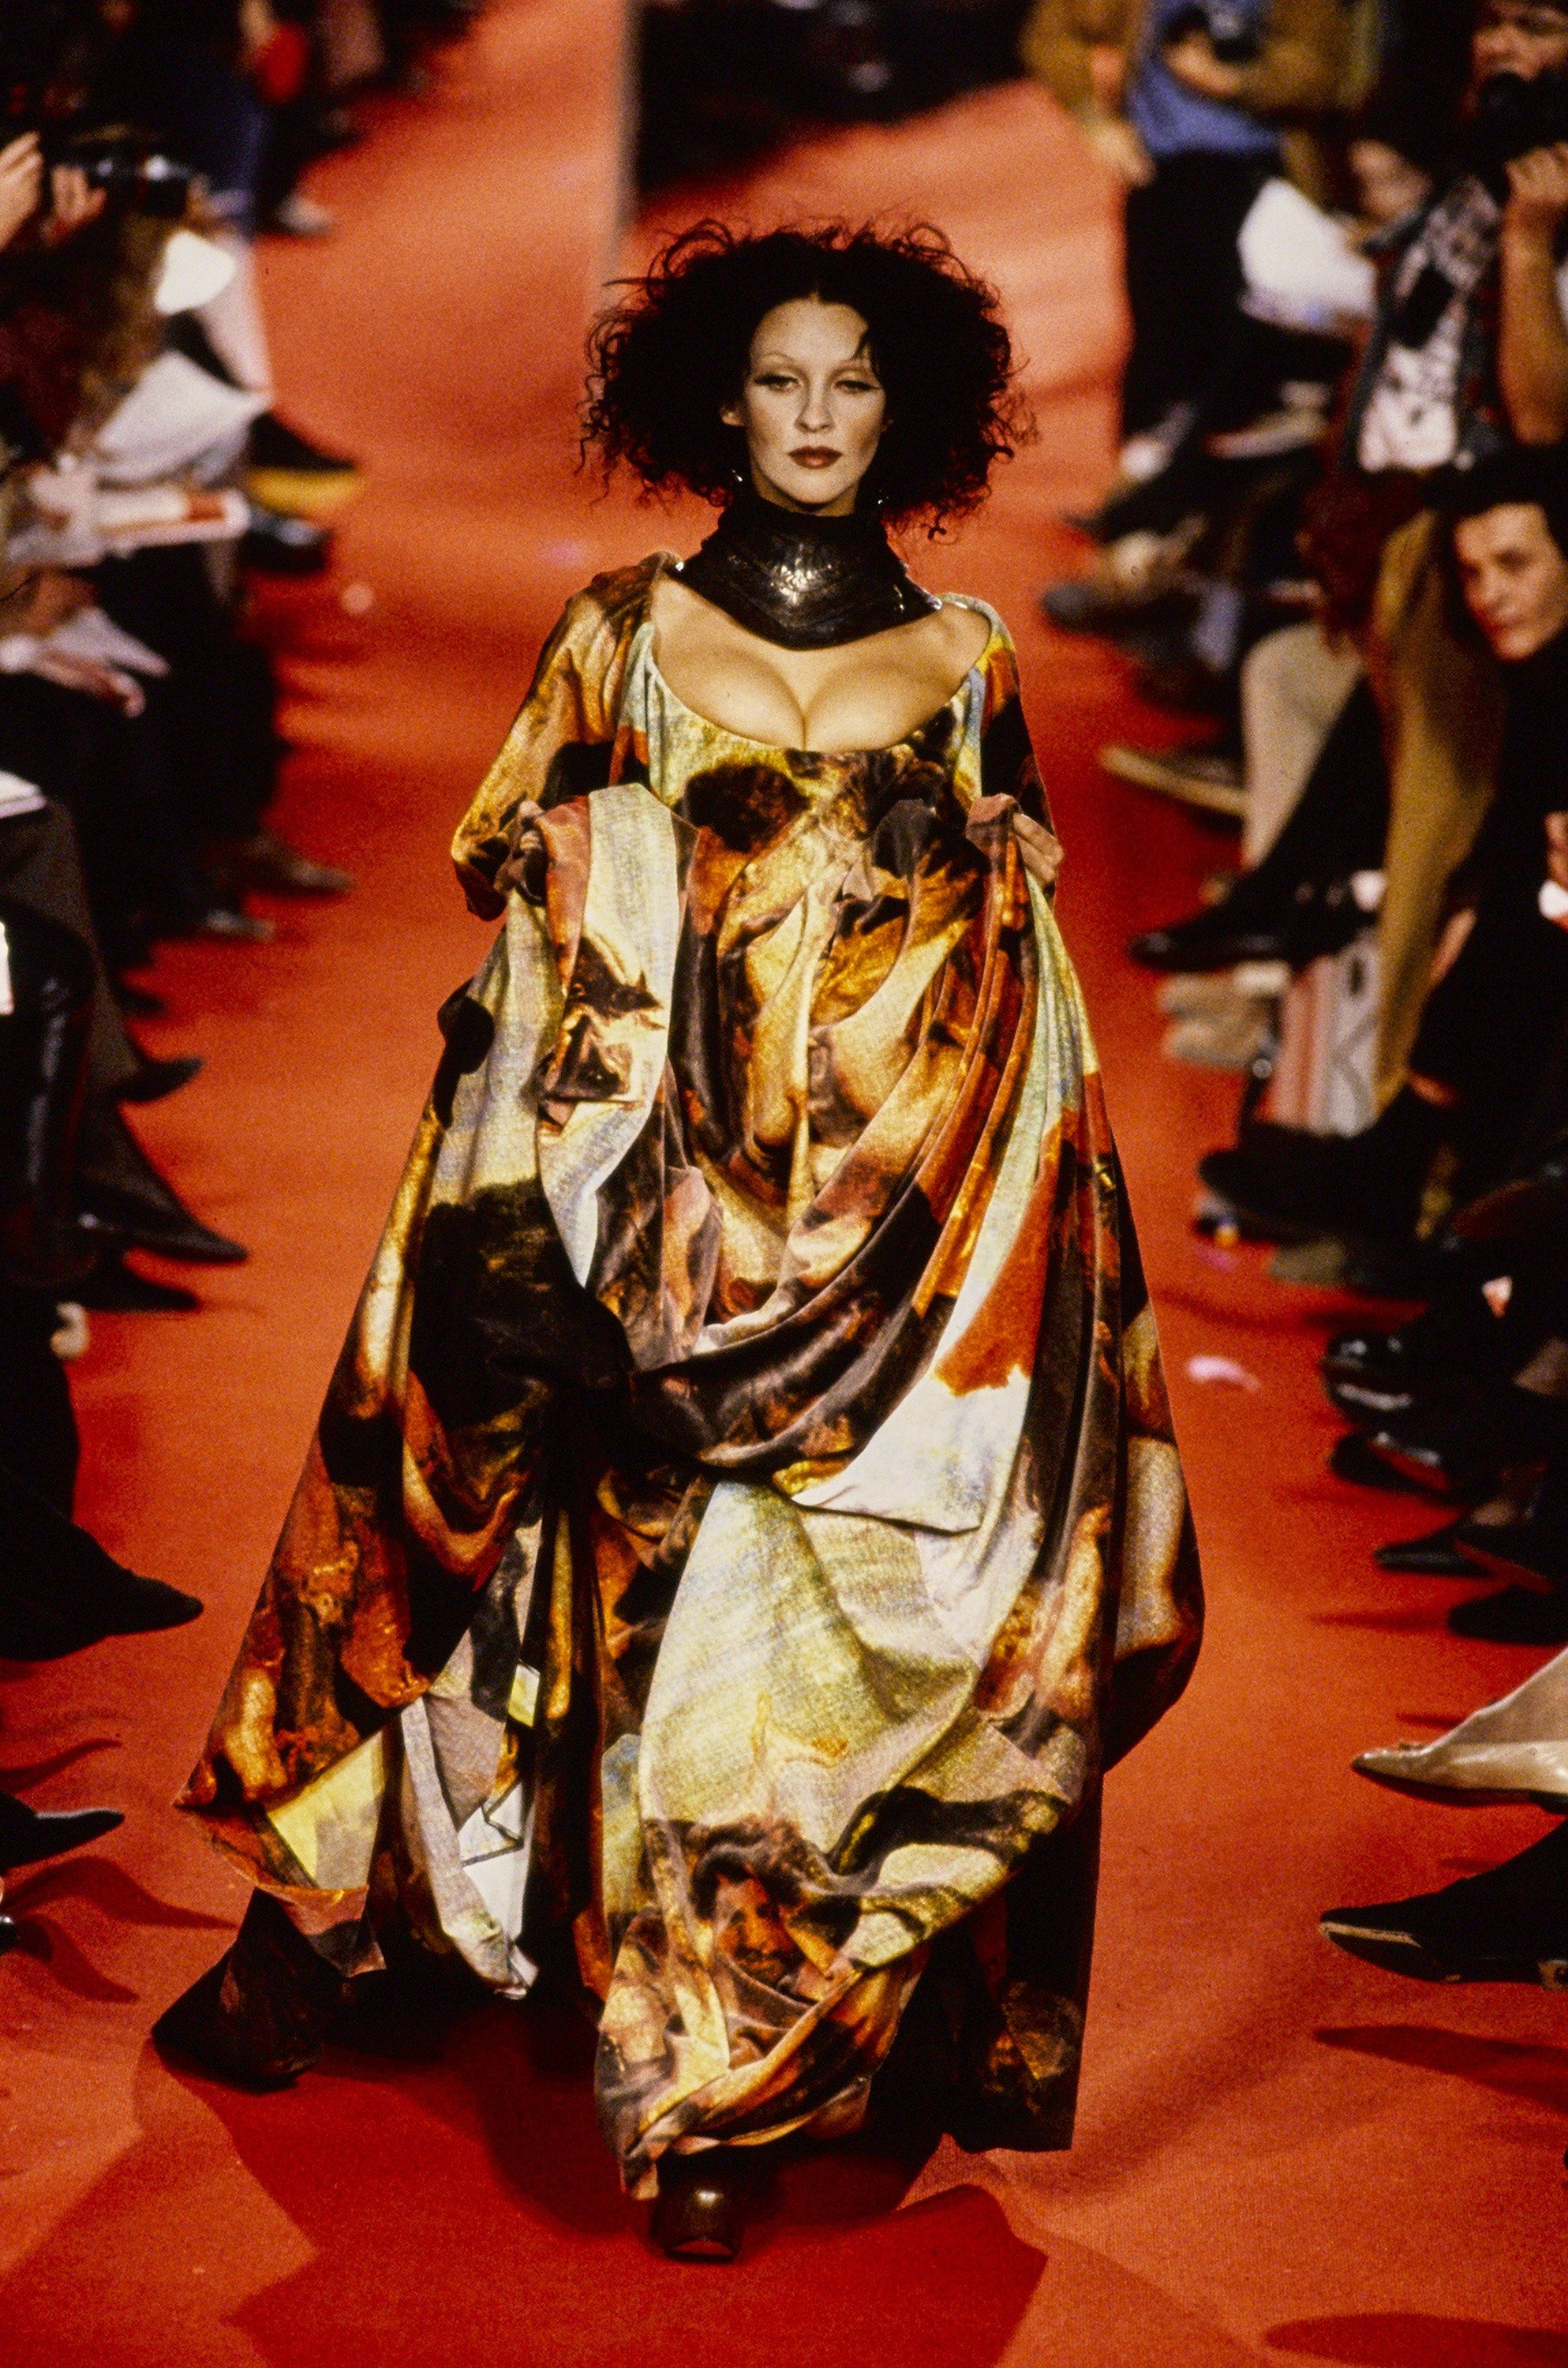 Andreas Kronthaler For Vivienne Westwood Fall 1993 Ready To Wear Fashion Show Vivienne Westwood Fashion High Fashion Couture